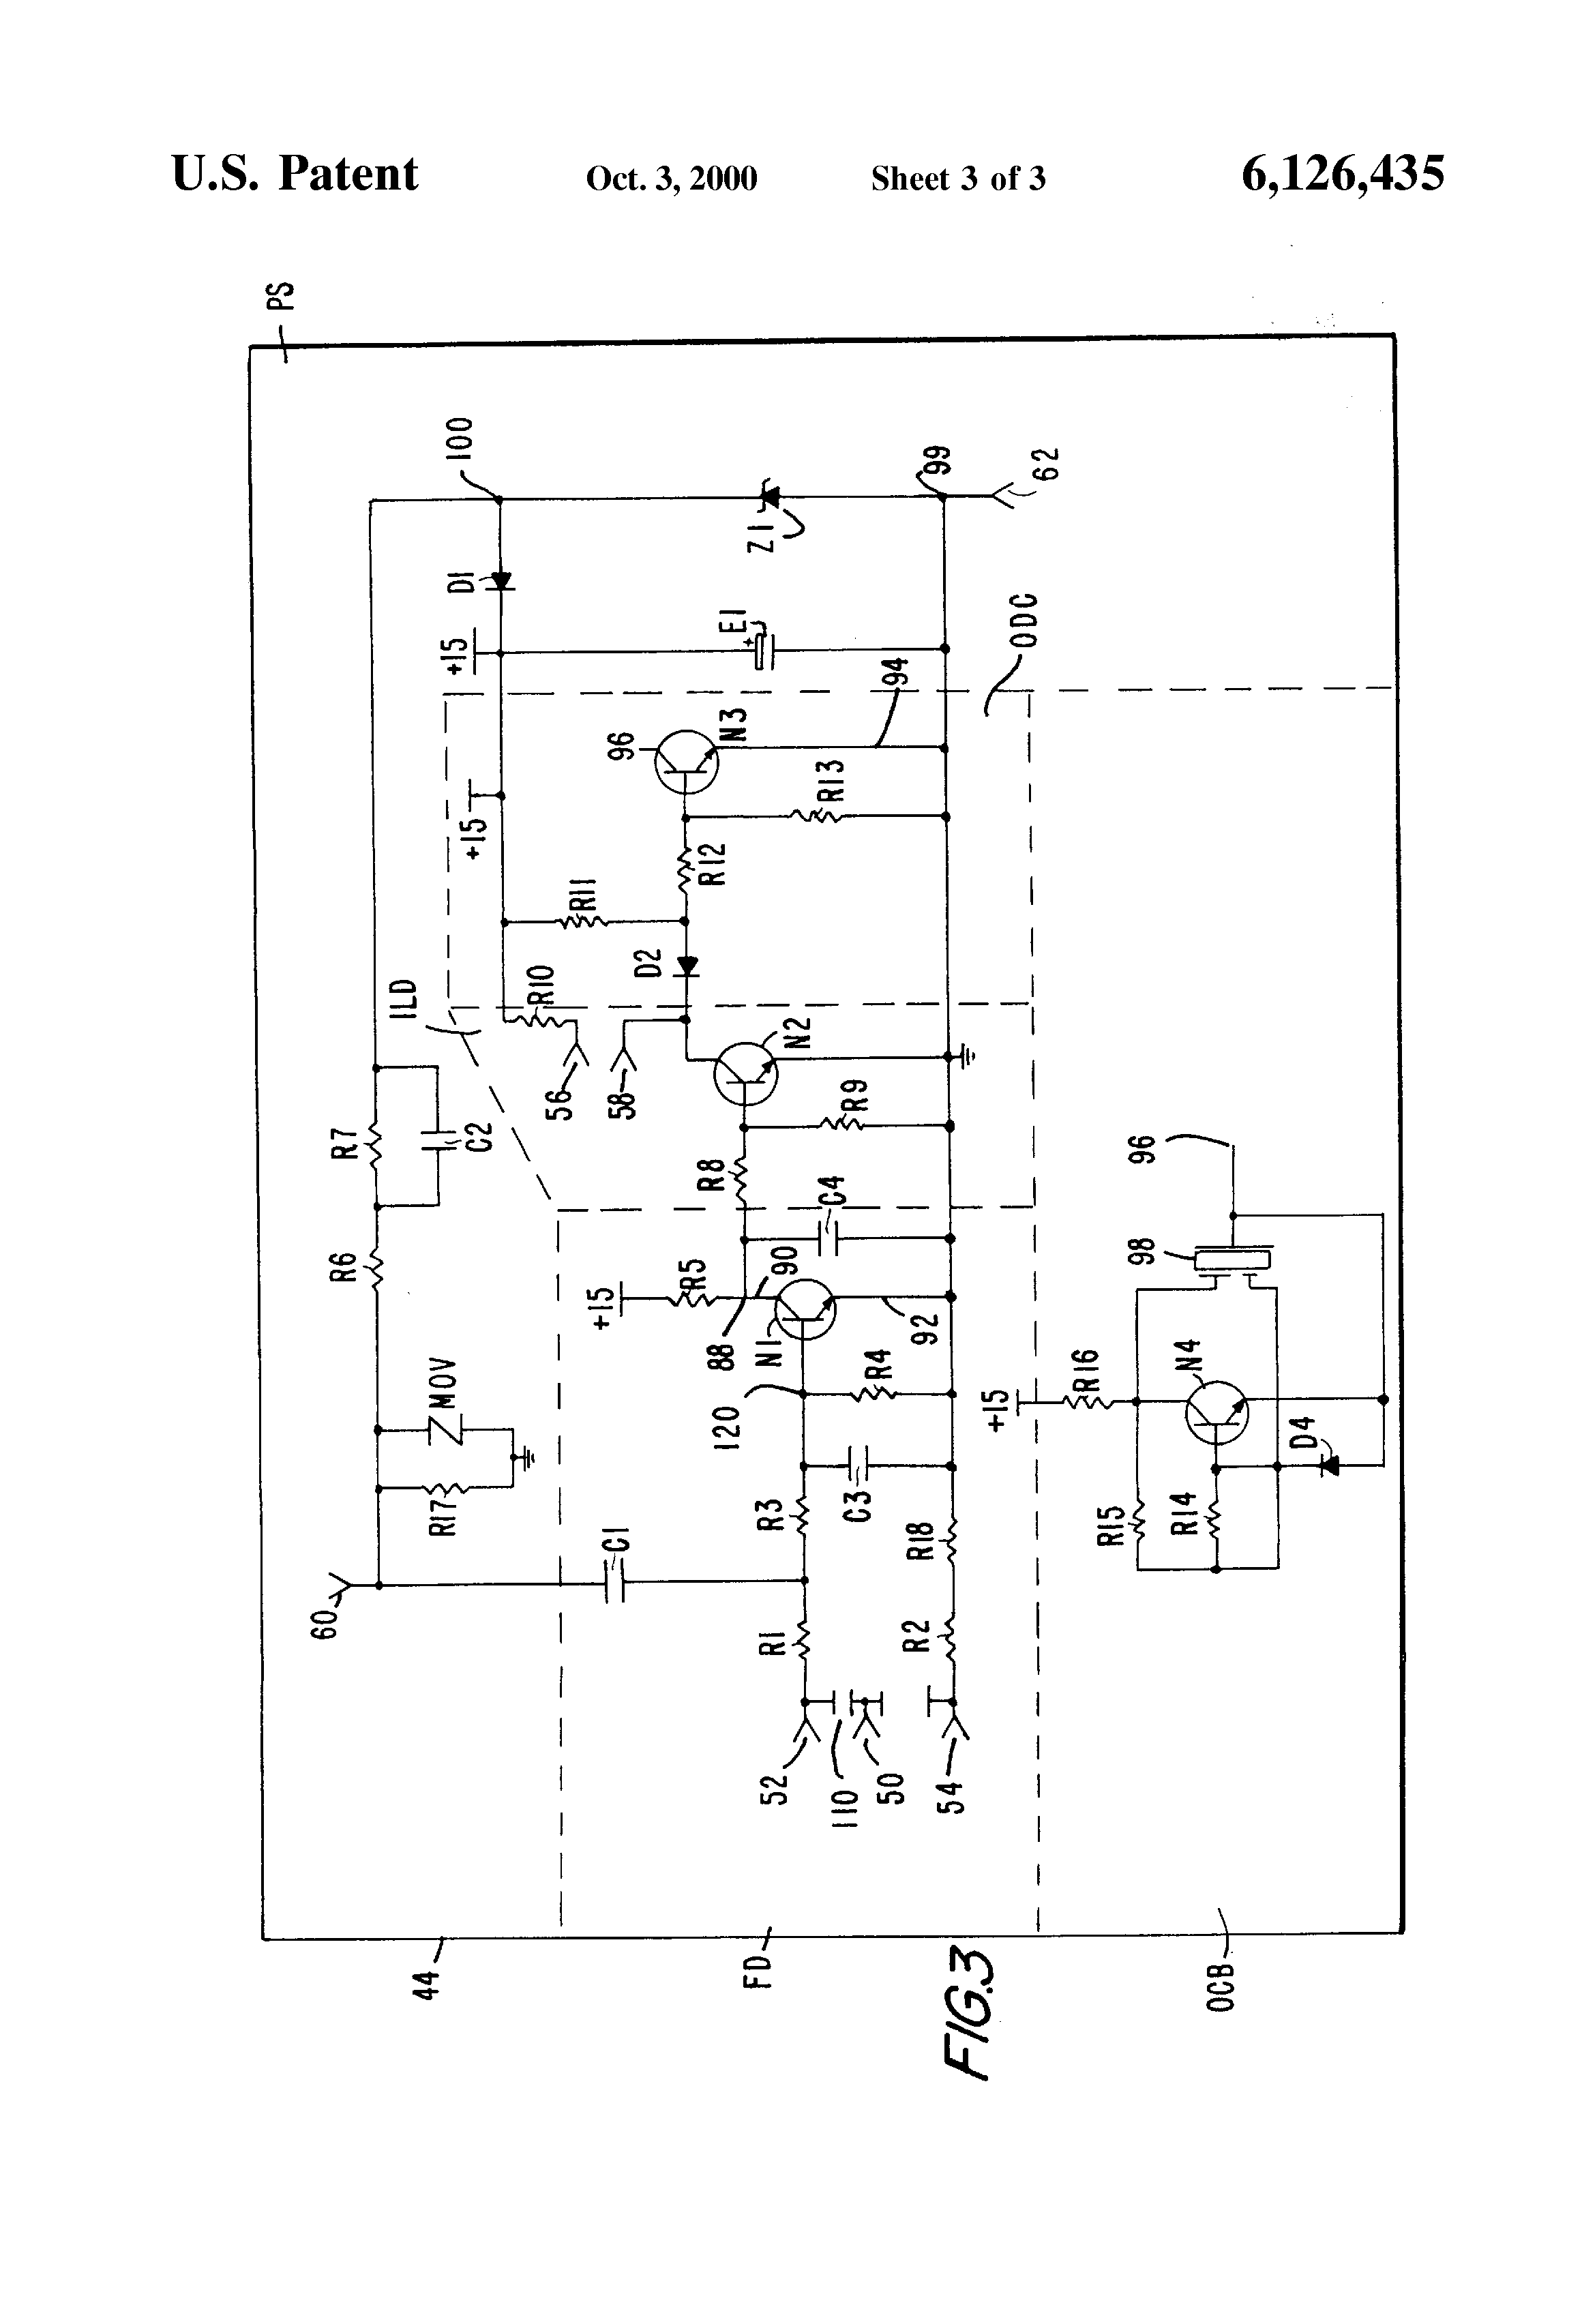 Wiring Diagram On An Ignitor System For At Tappan Gas Stove